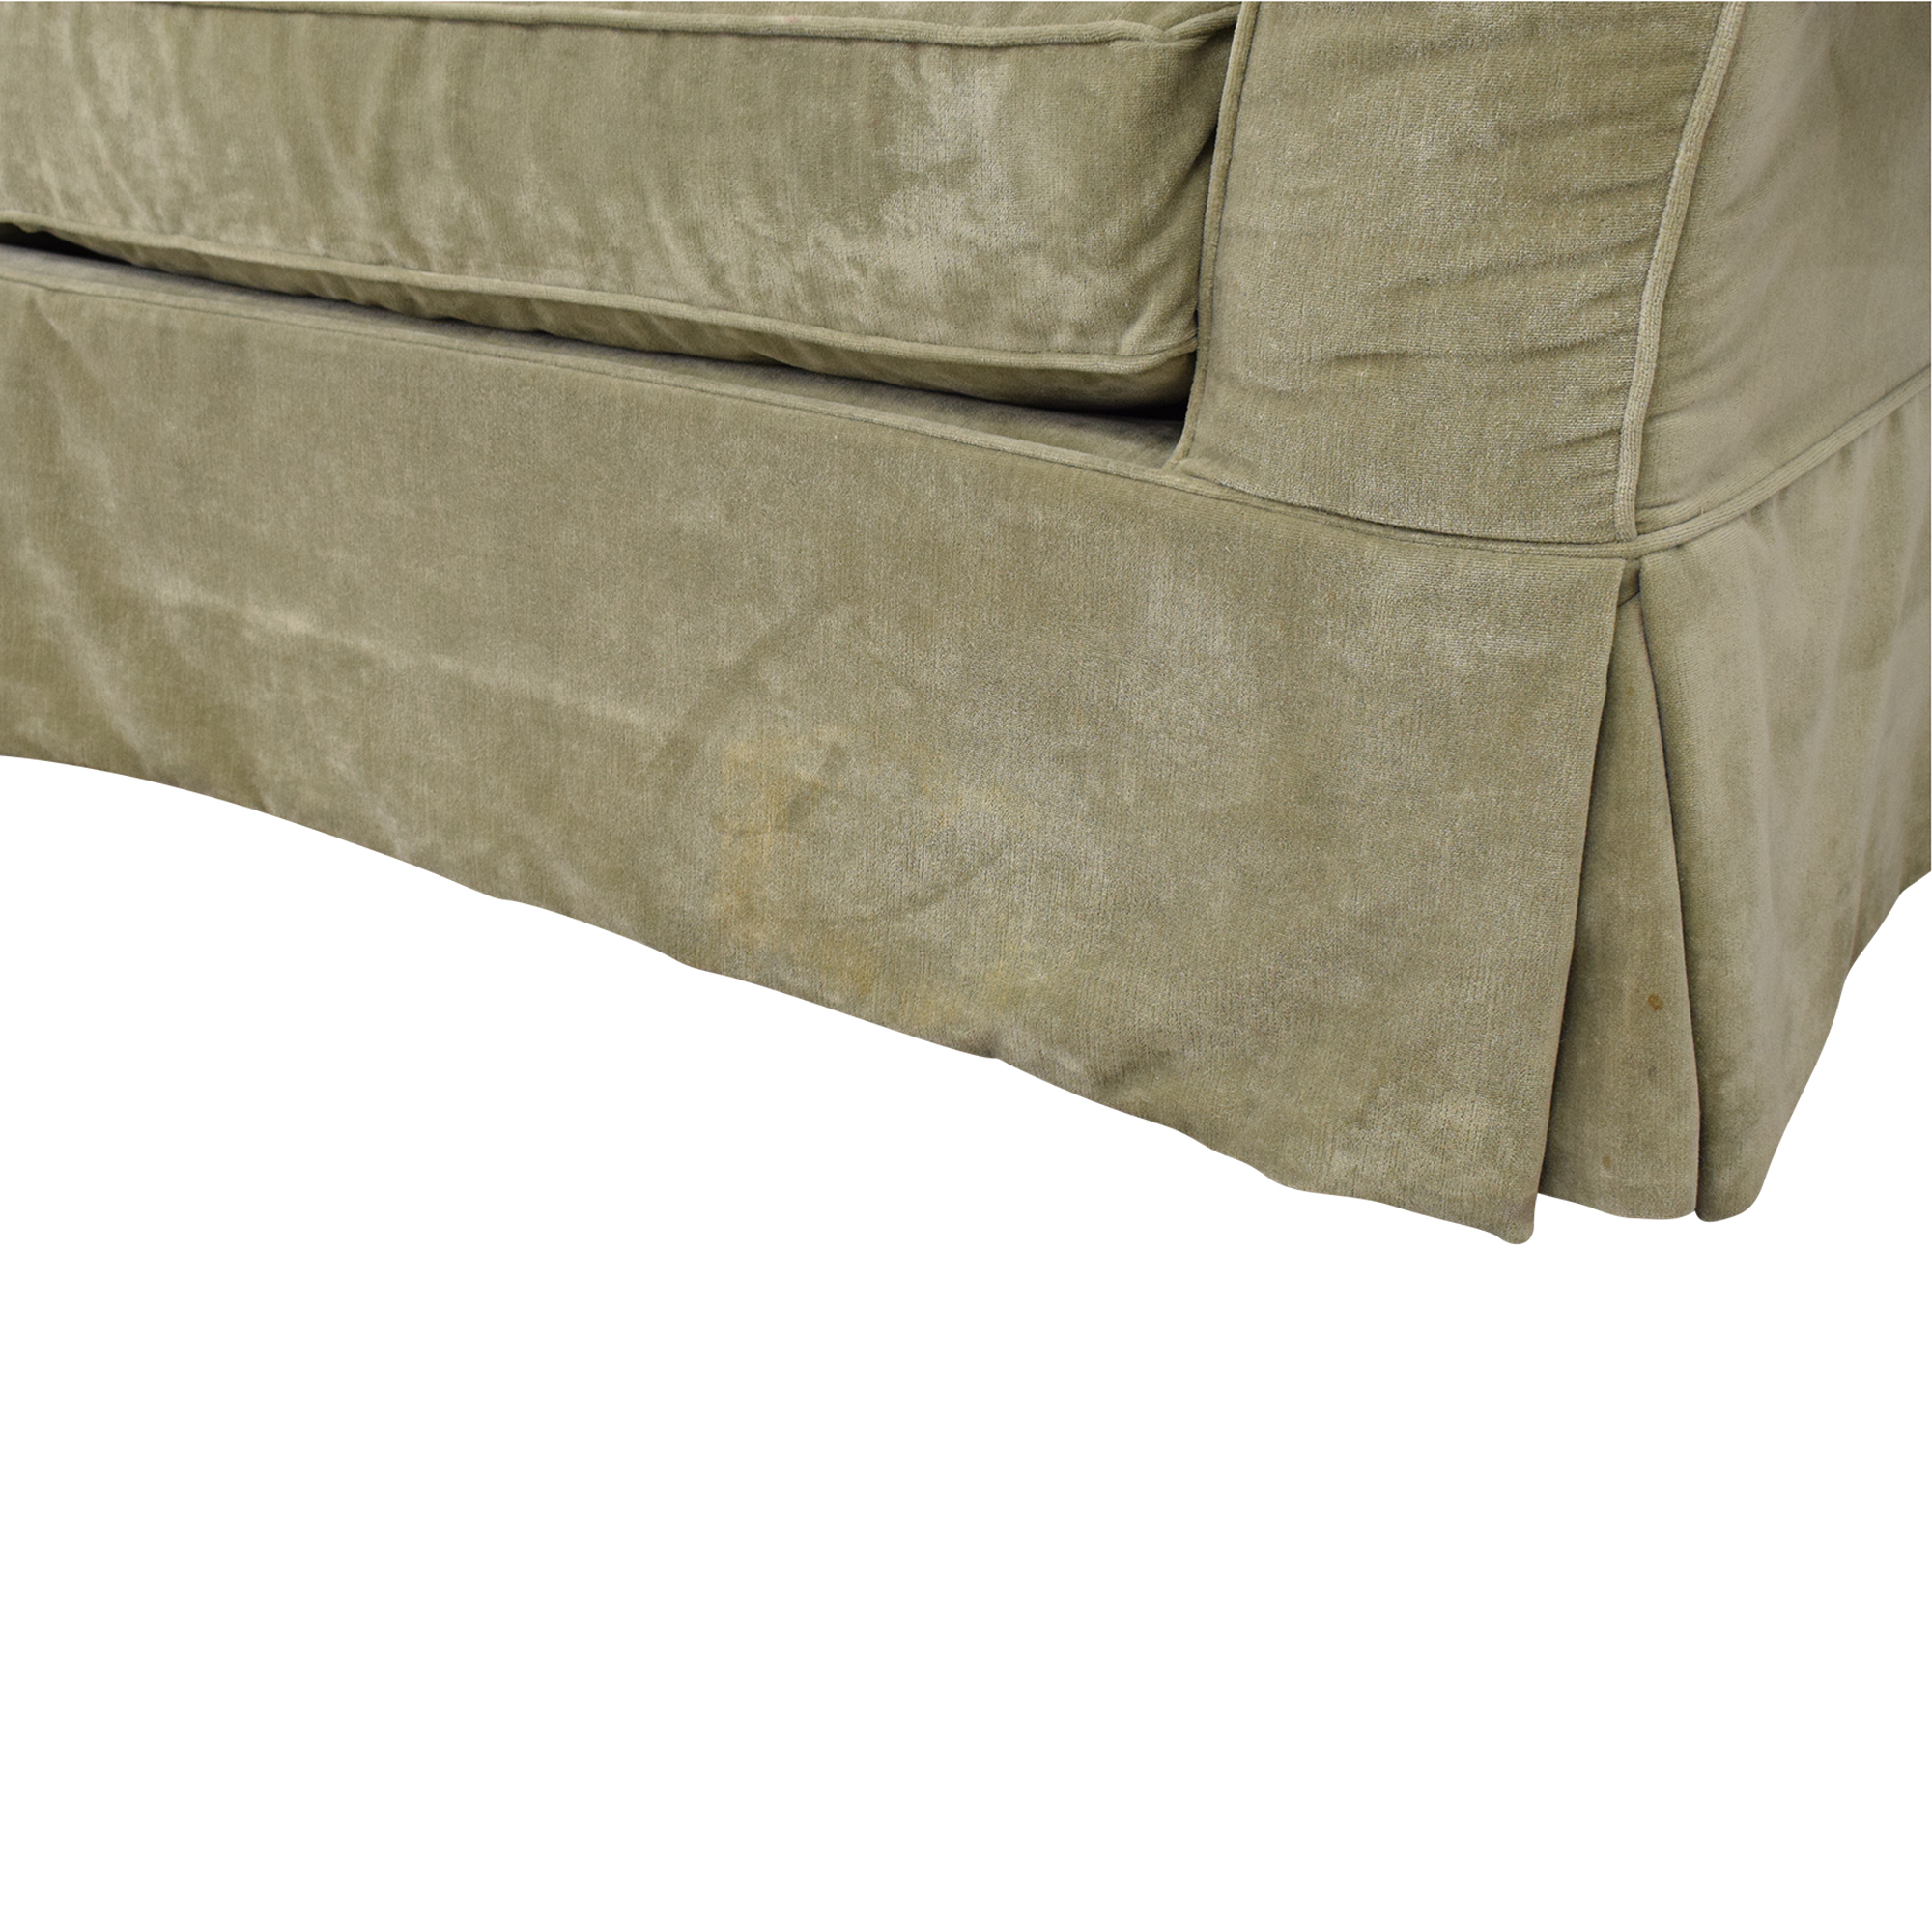 Domain Domain Skirted Sofa used